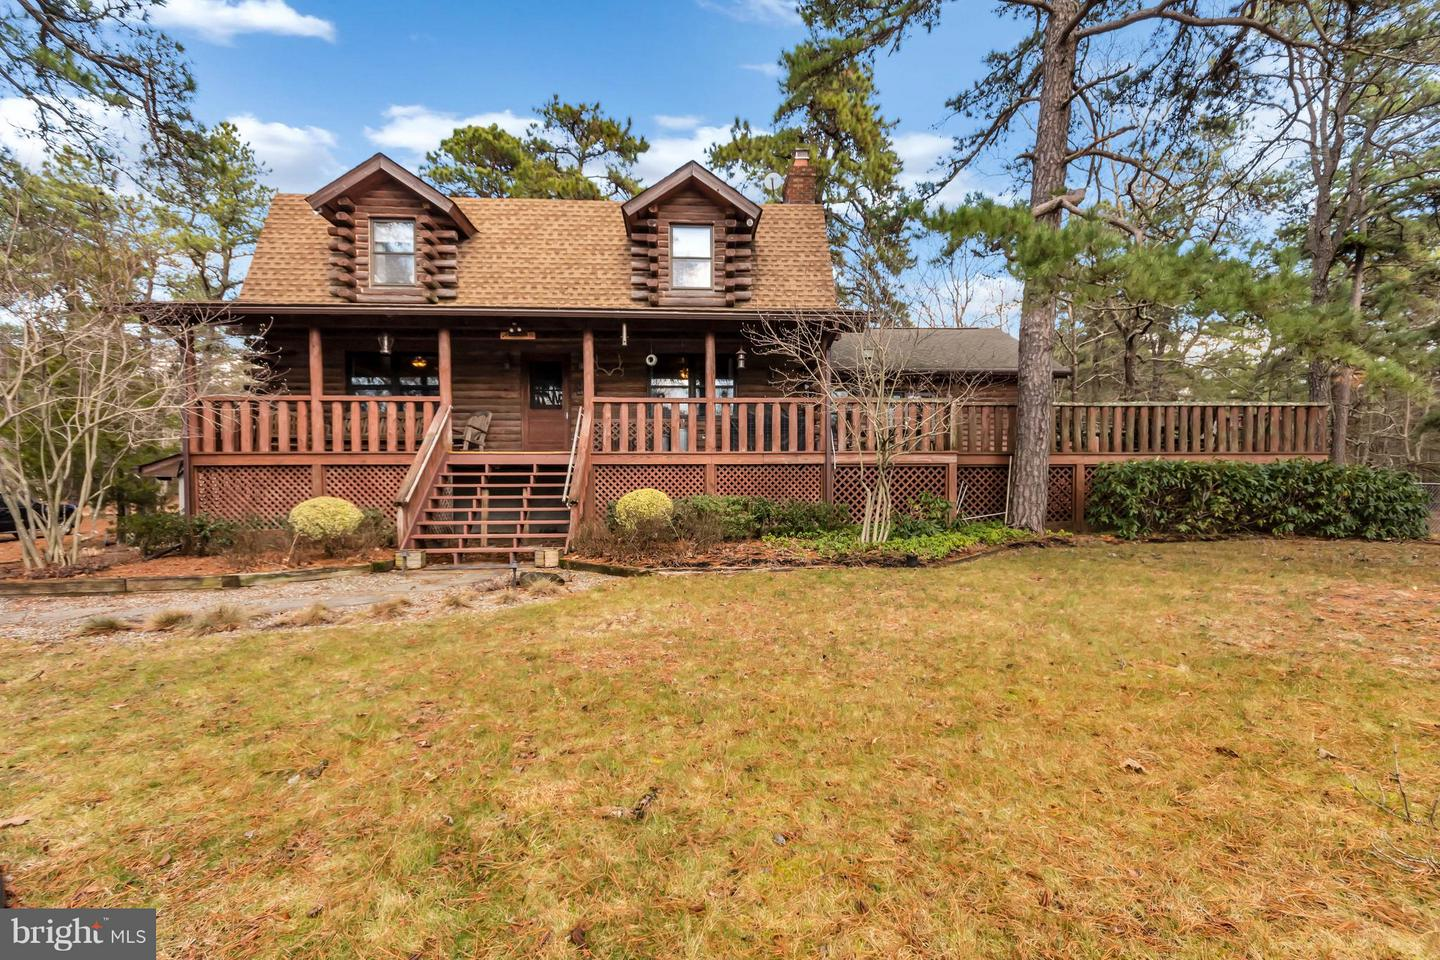 Single Family Home for Sale at Chatsworth, New Jersey 08019 United States